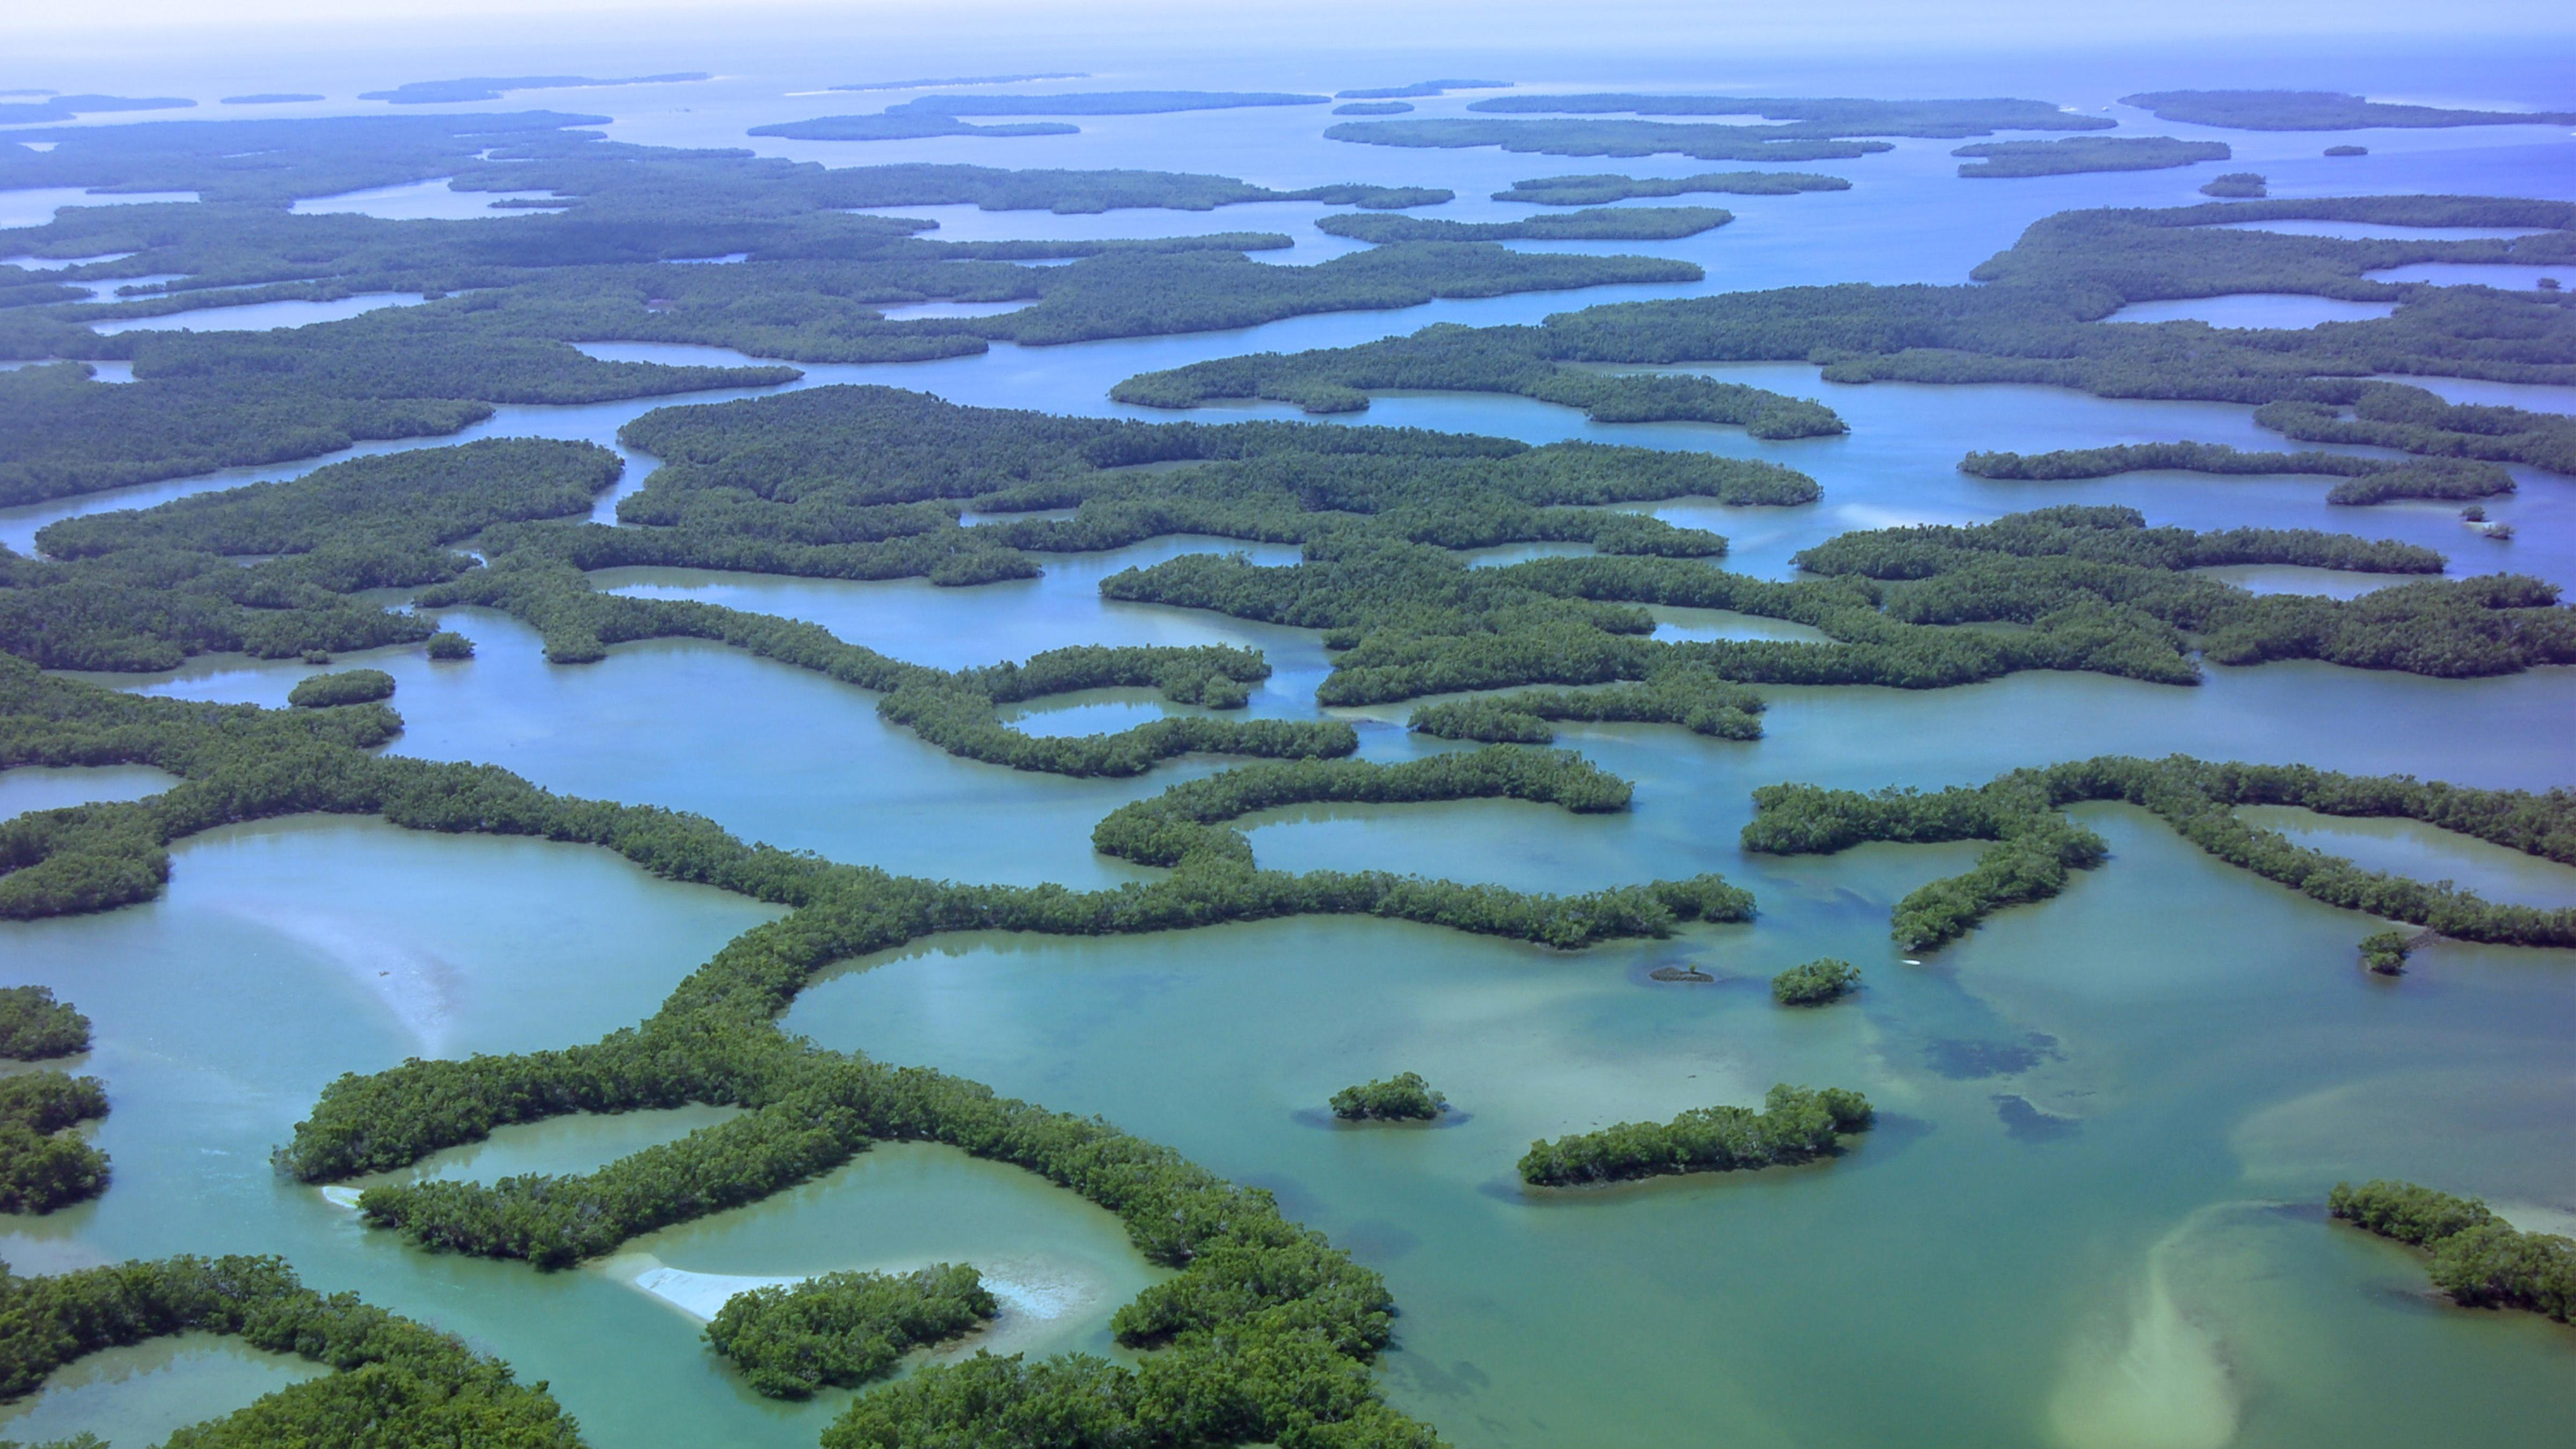 Seagrasses and Mangroves